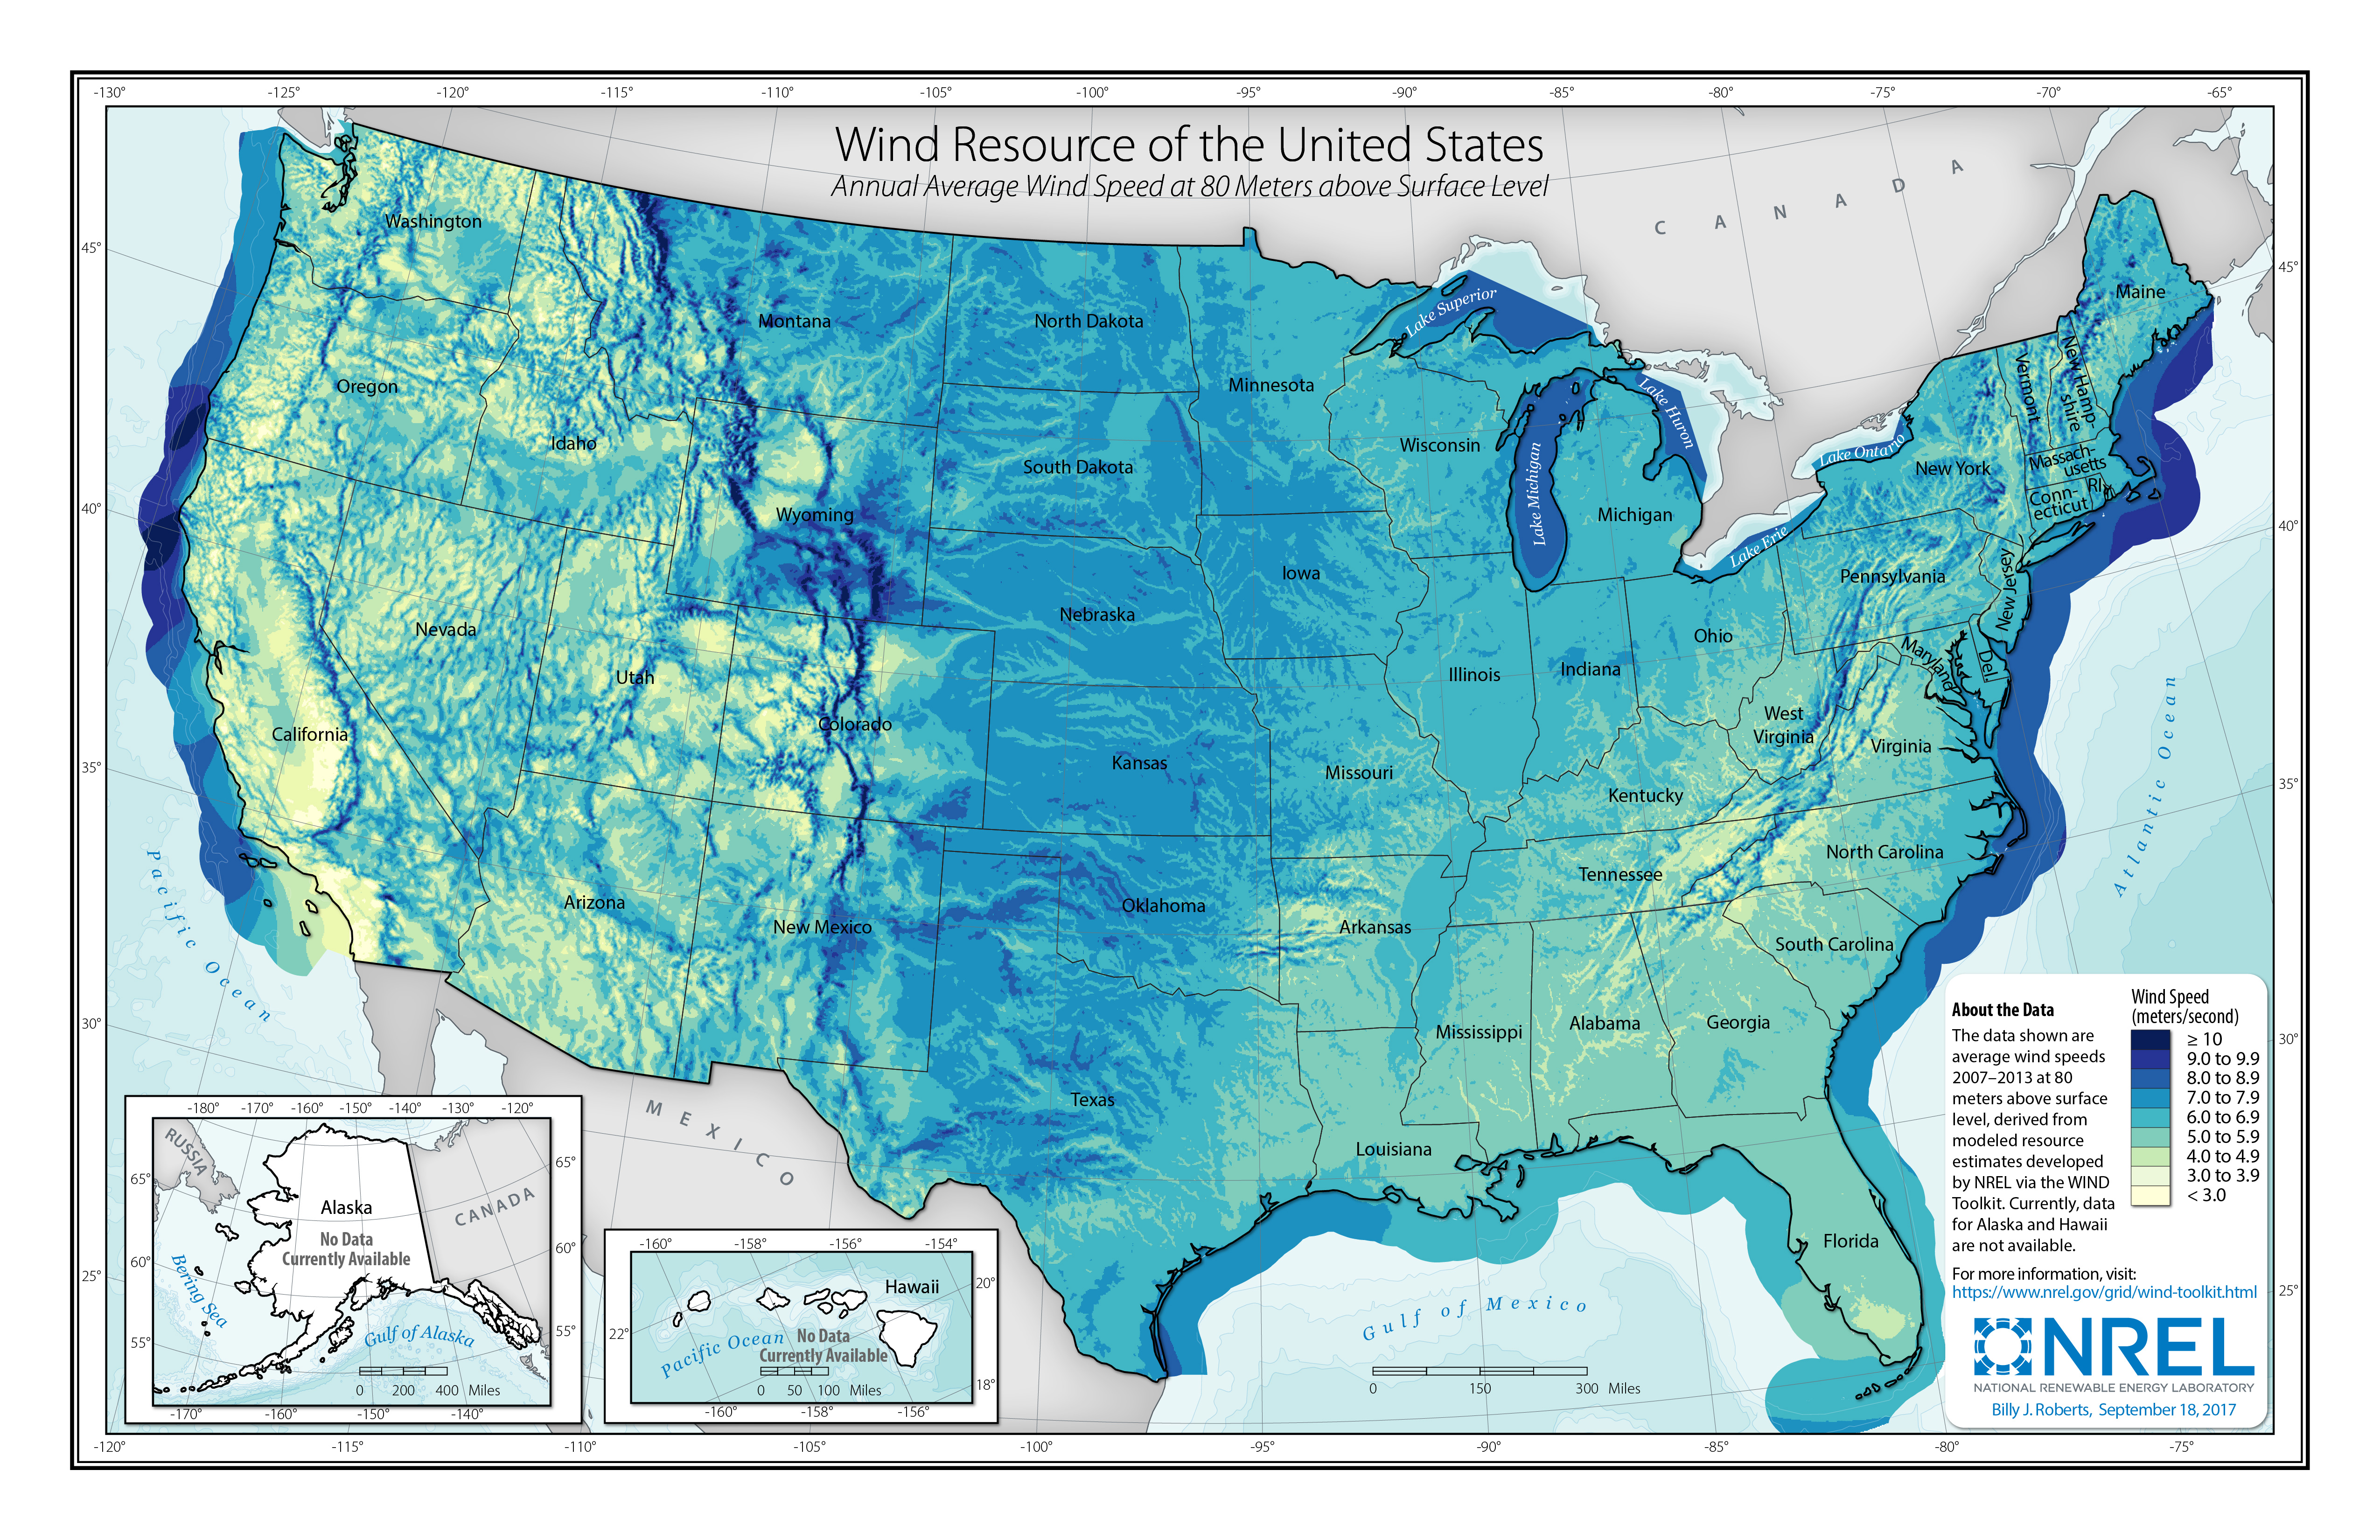 united states wind map Wind Resource Data, Tools, and Maps   Geospatial Data Science   NREL